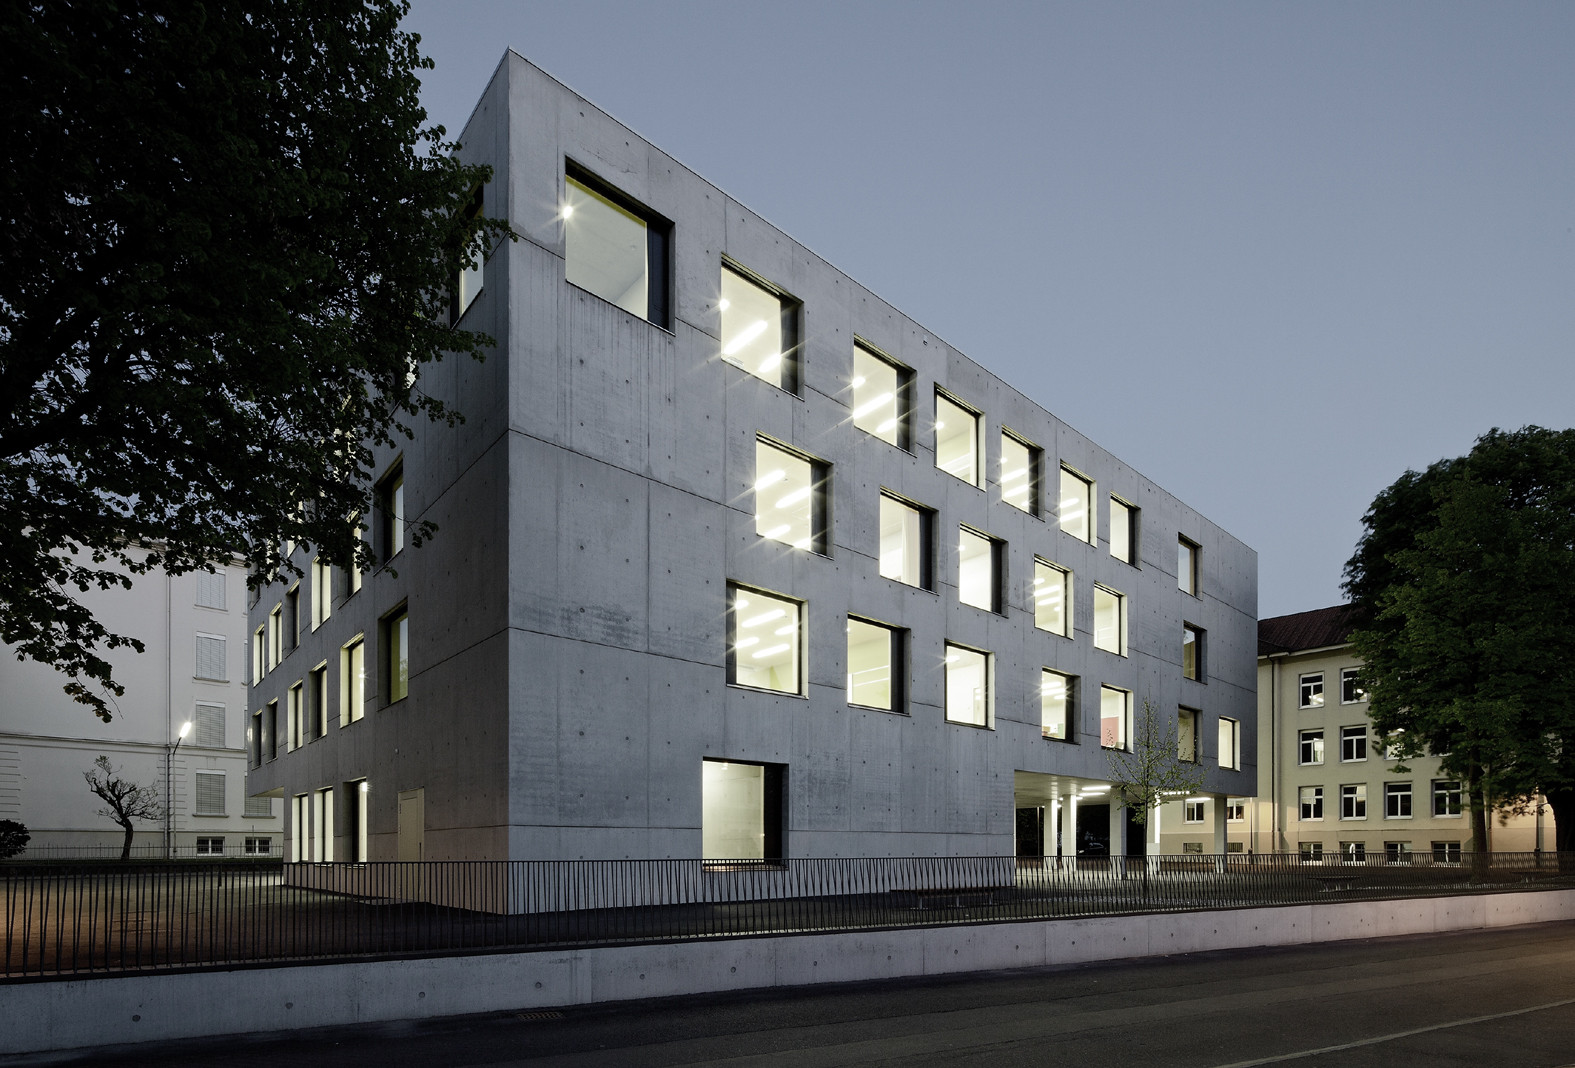 Special Education Centre in Dornbirn / Marte Marte Architekten, Courtesy of Marte Marte Architekten